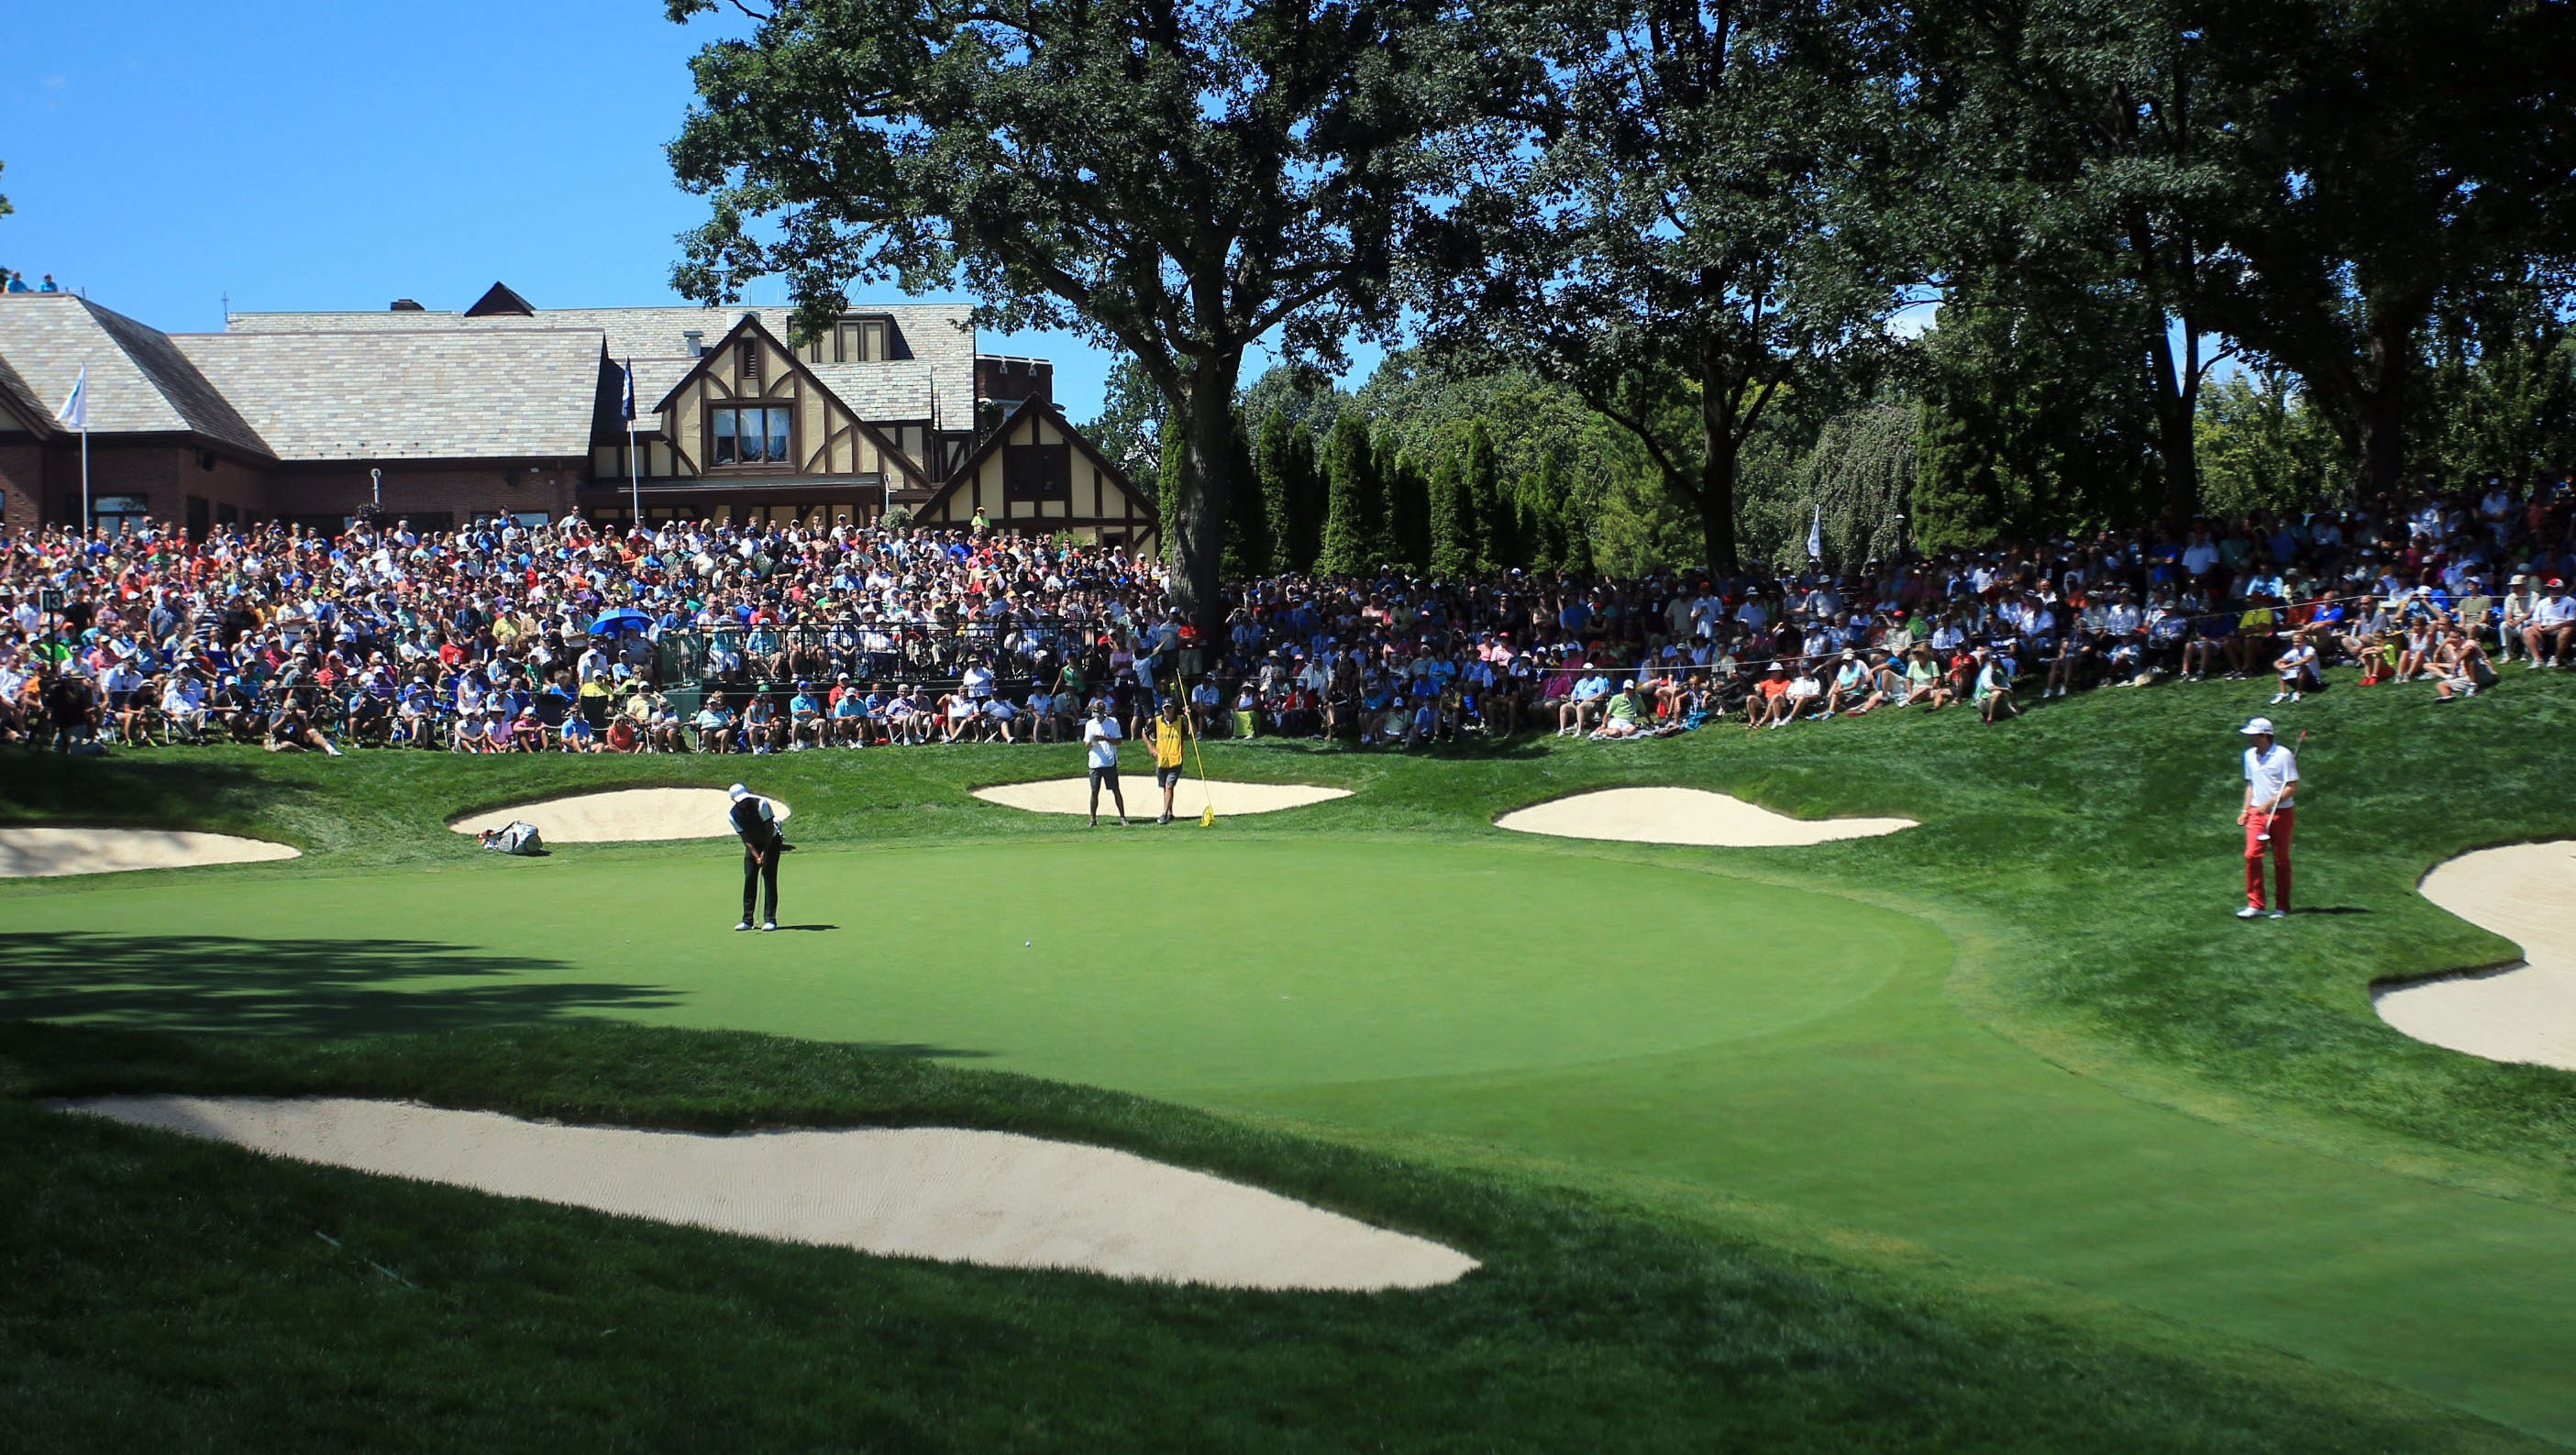 The crowds have been out in force all week at the PGA. Here fans pack in at the 13th green to watch Tiger Woods.